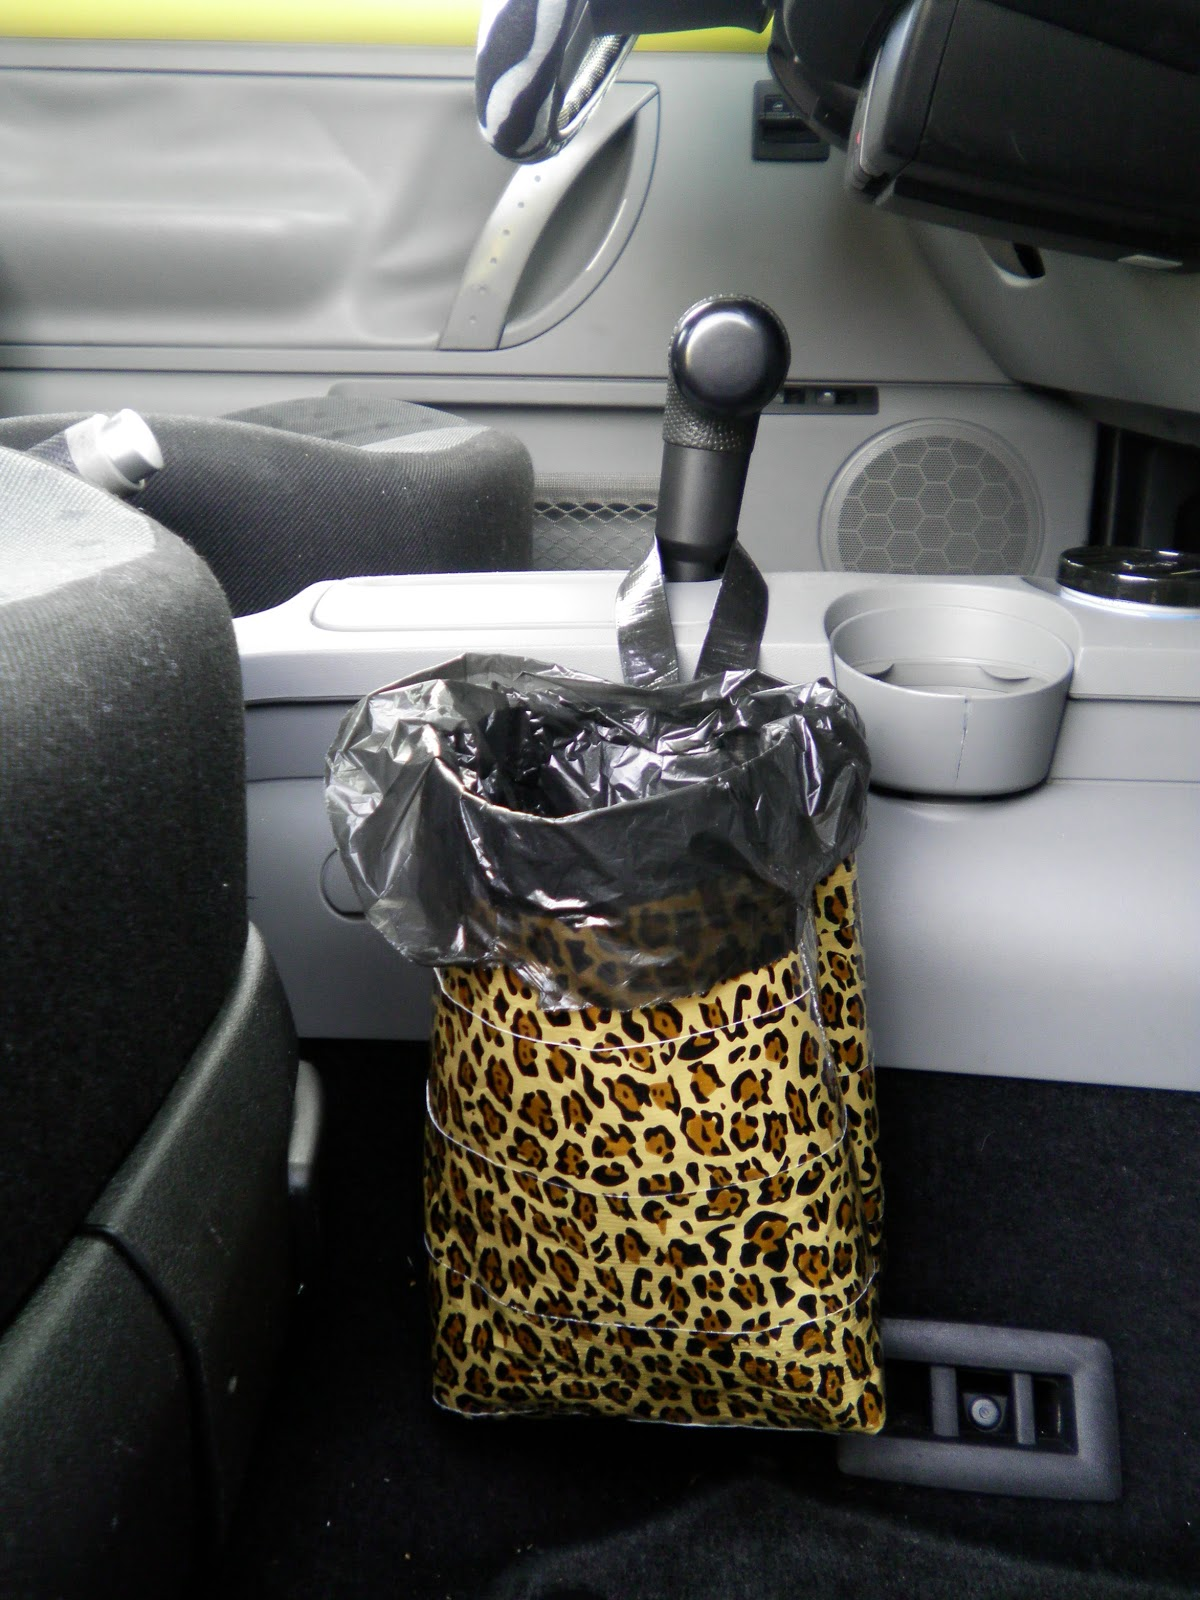 I Dont Know About You But My Car Tends To Gather Trash Quickly Wanted Something Hold In The That Would Be Cuter Than Say